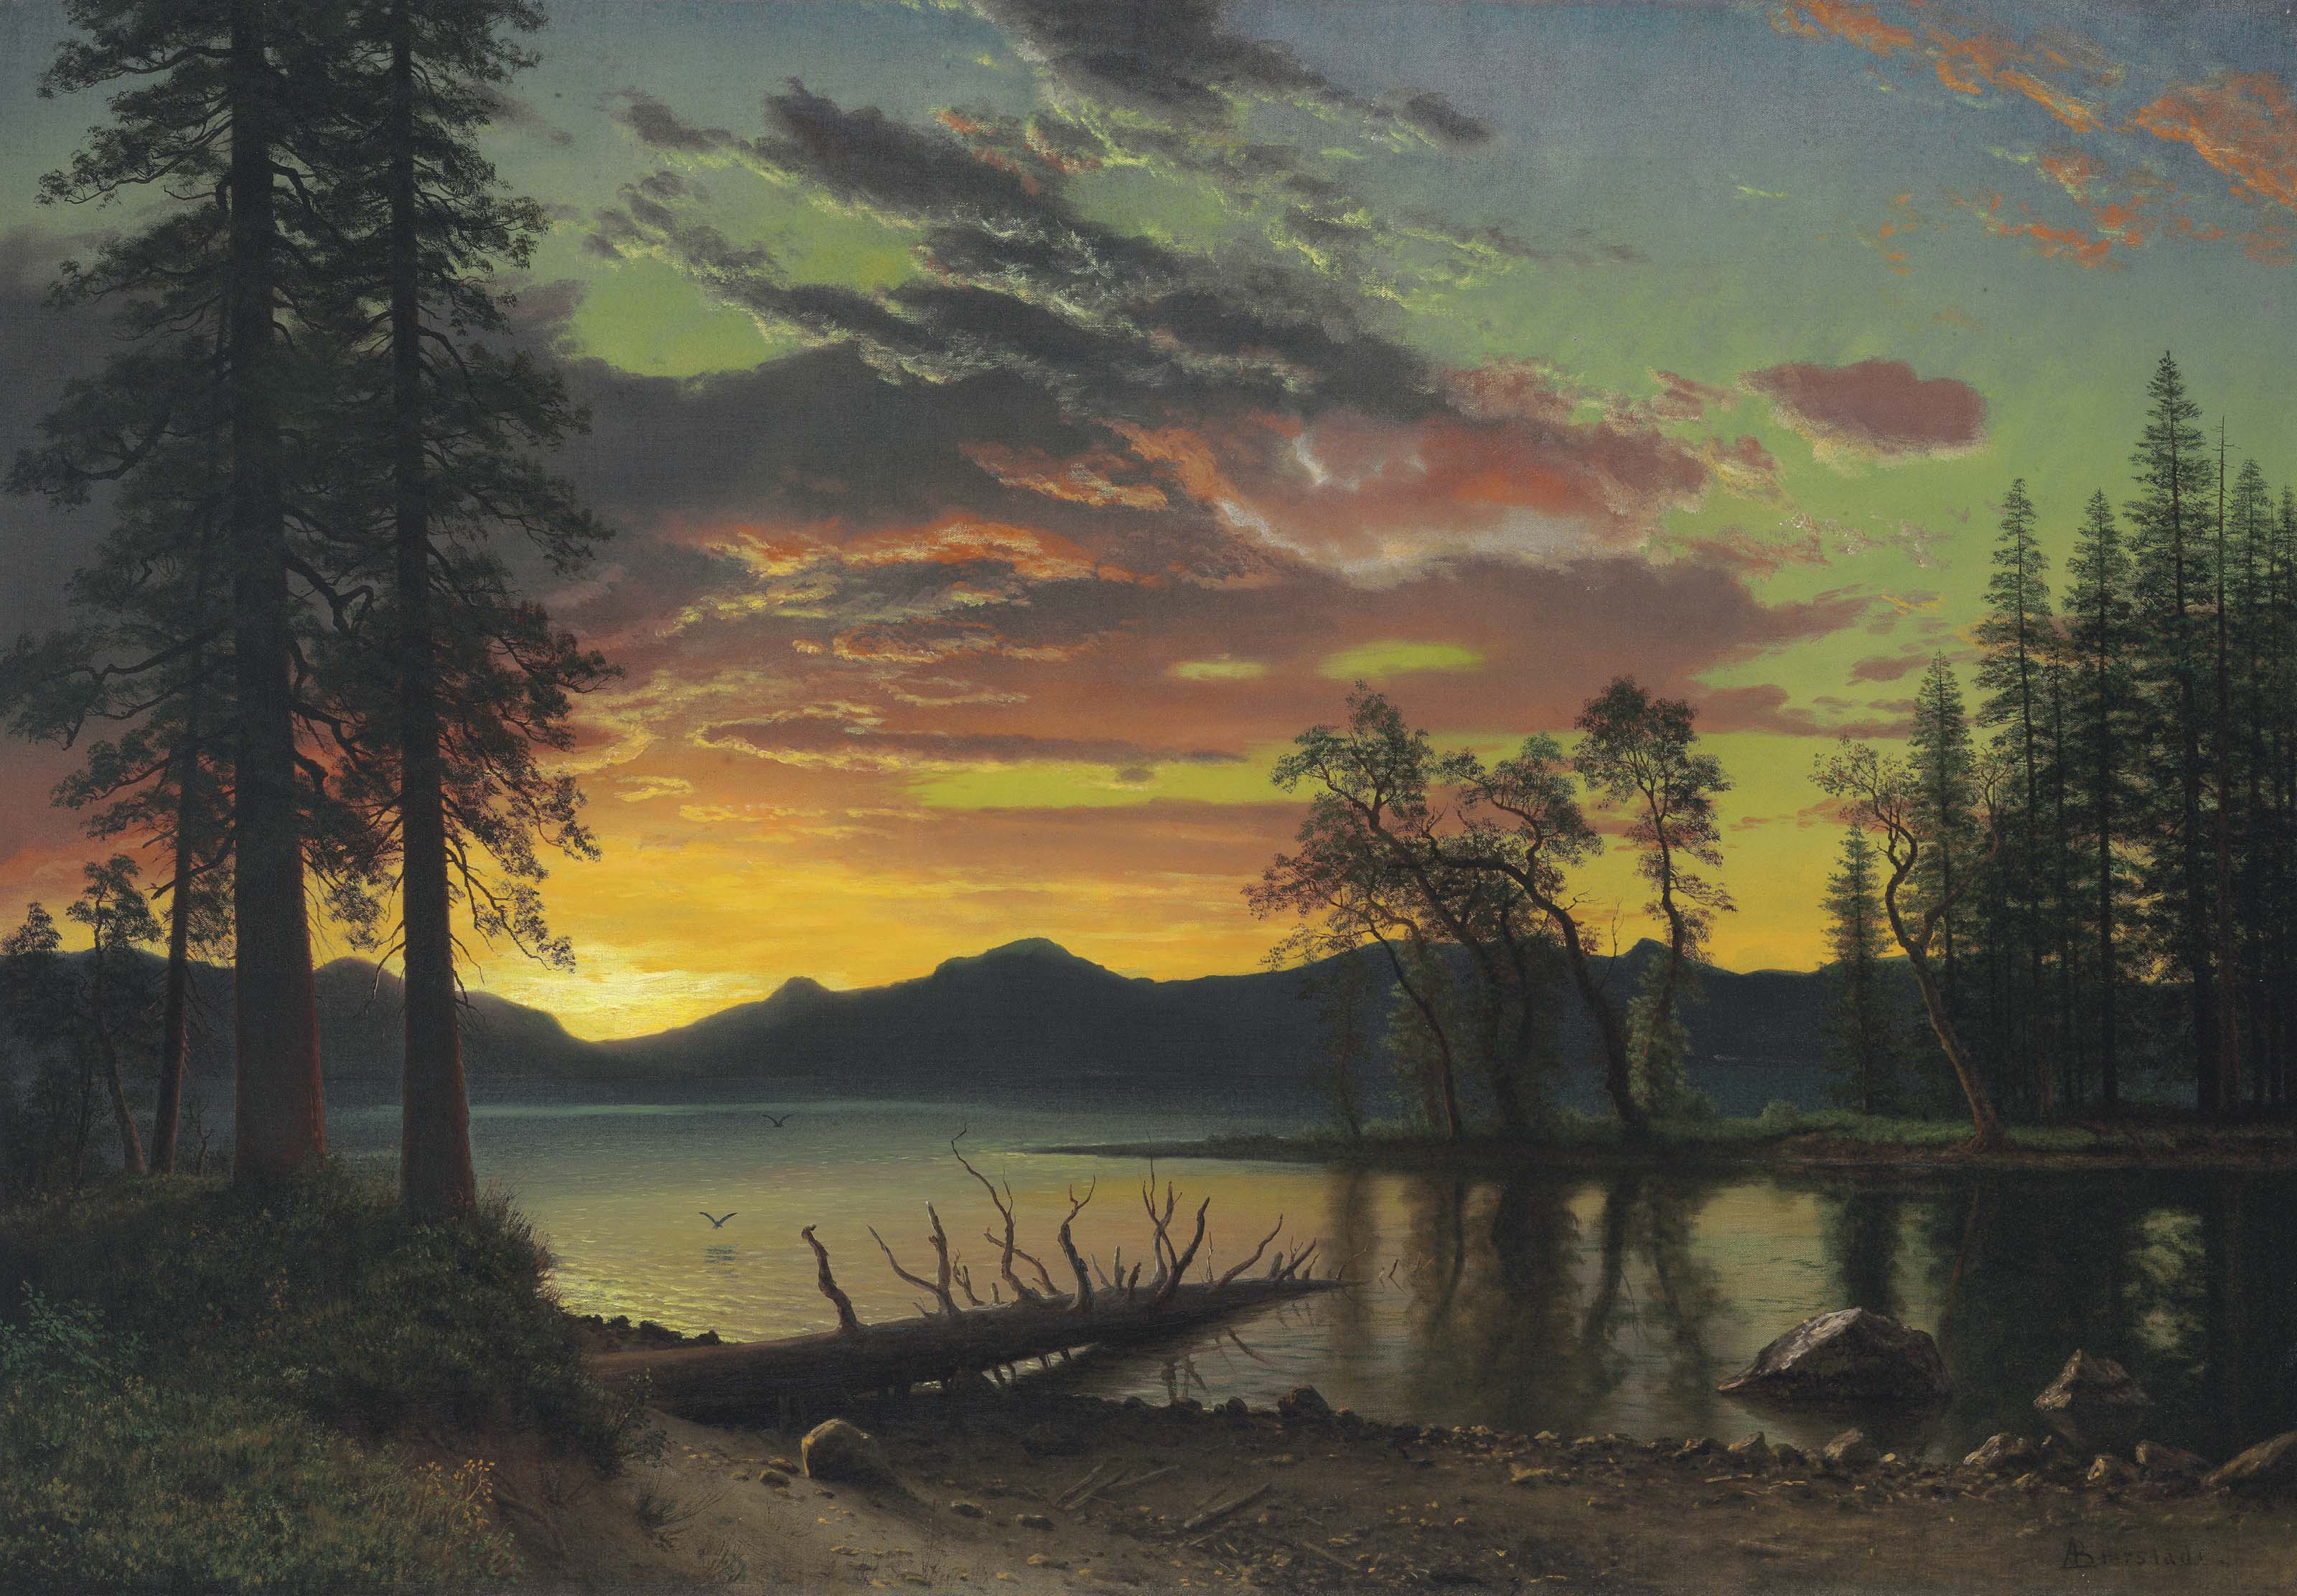 Twilight, Lake Tahoe